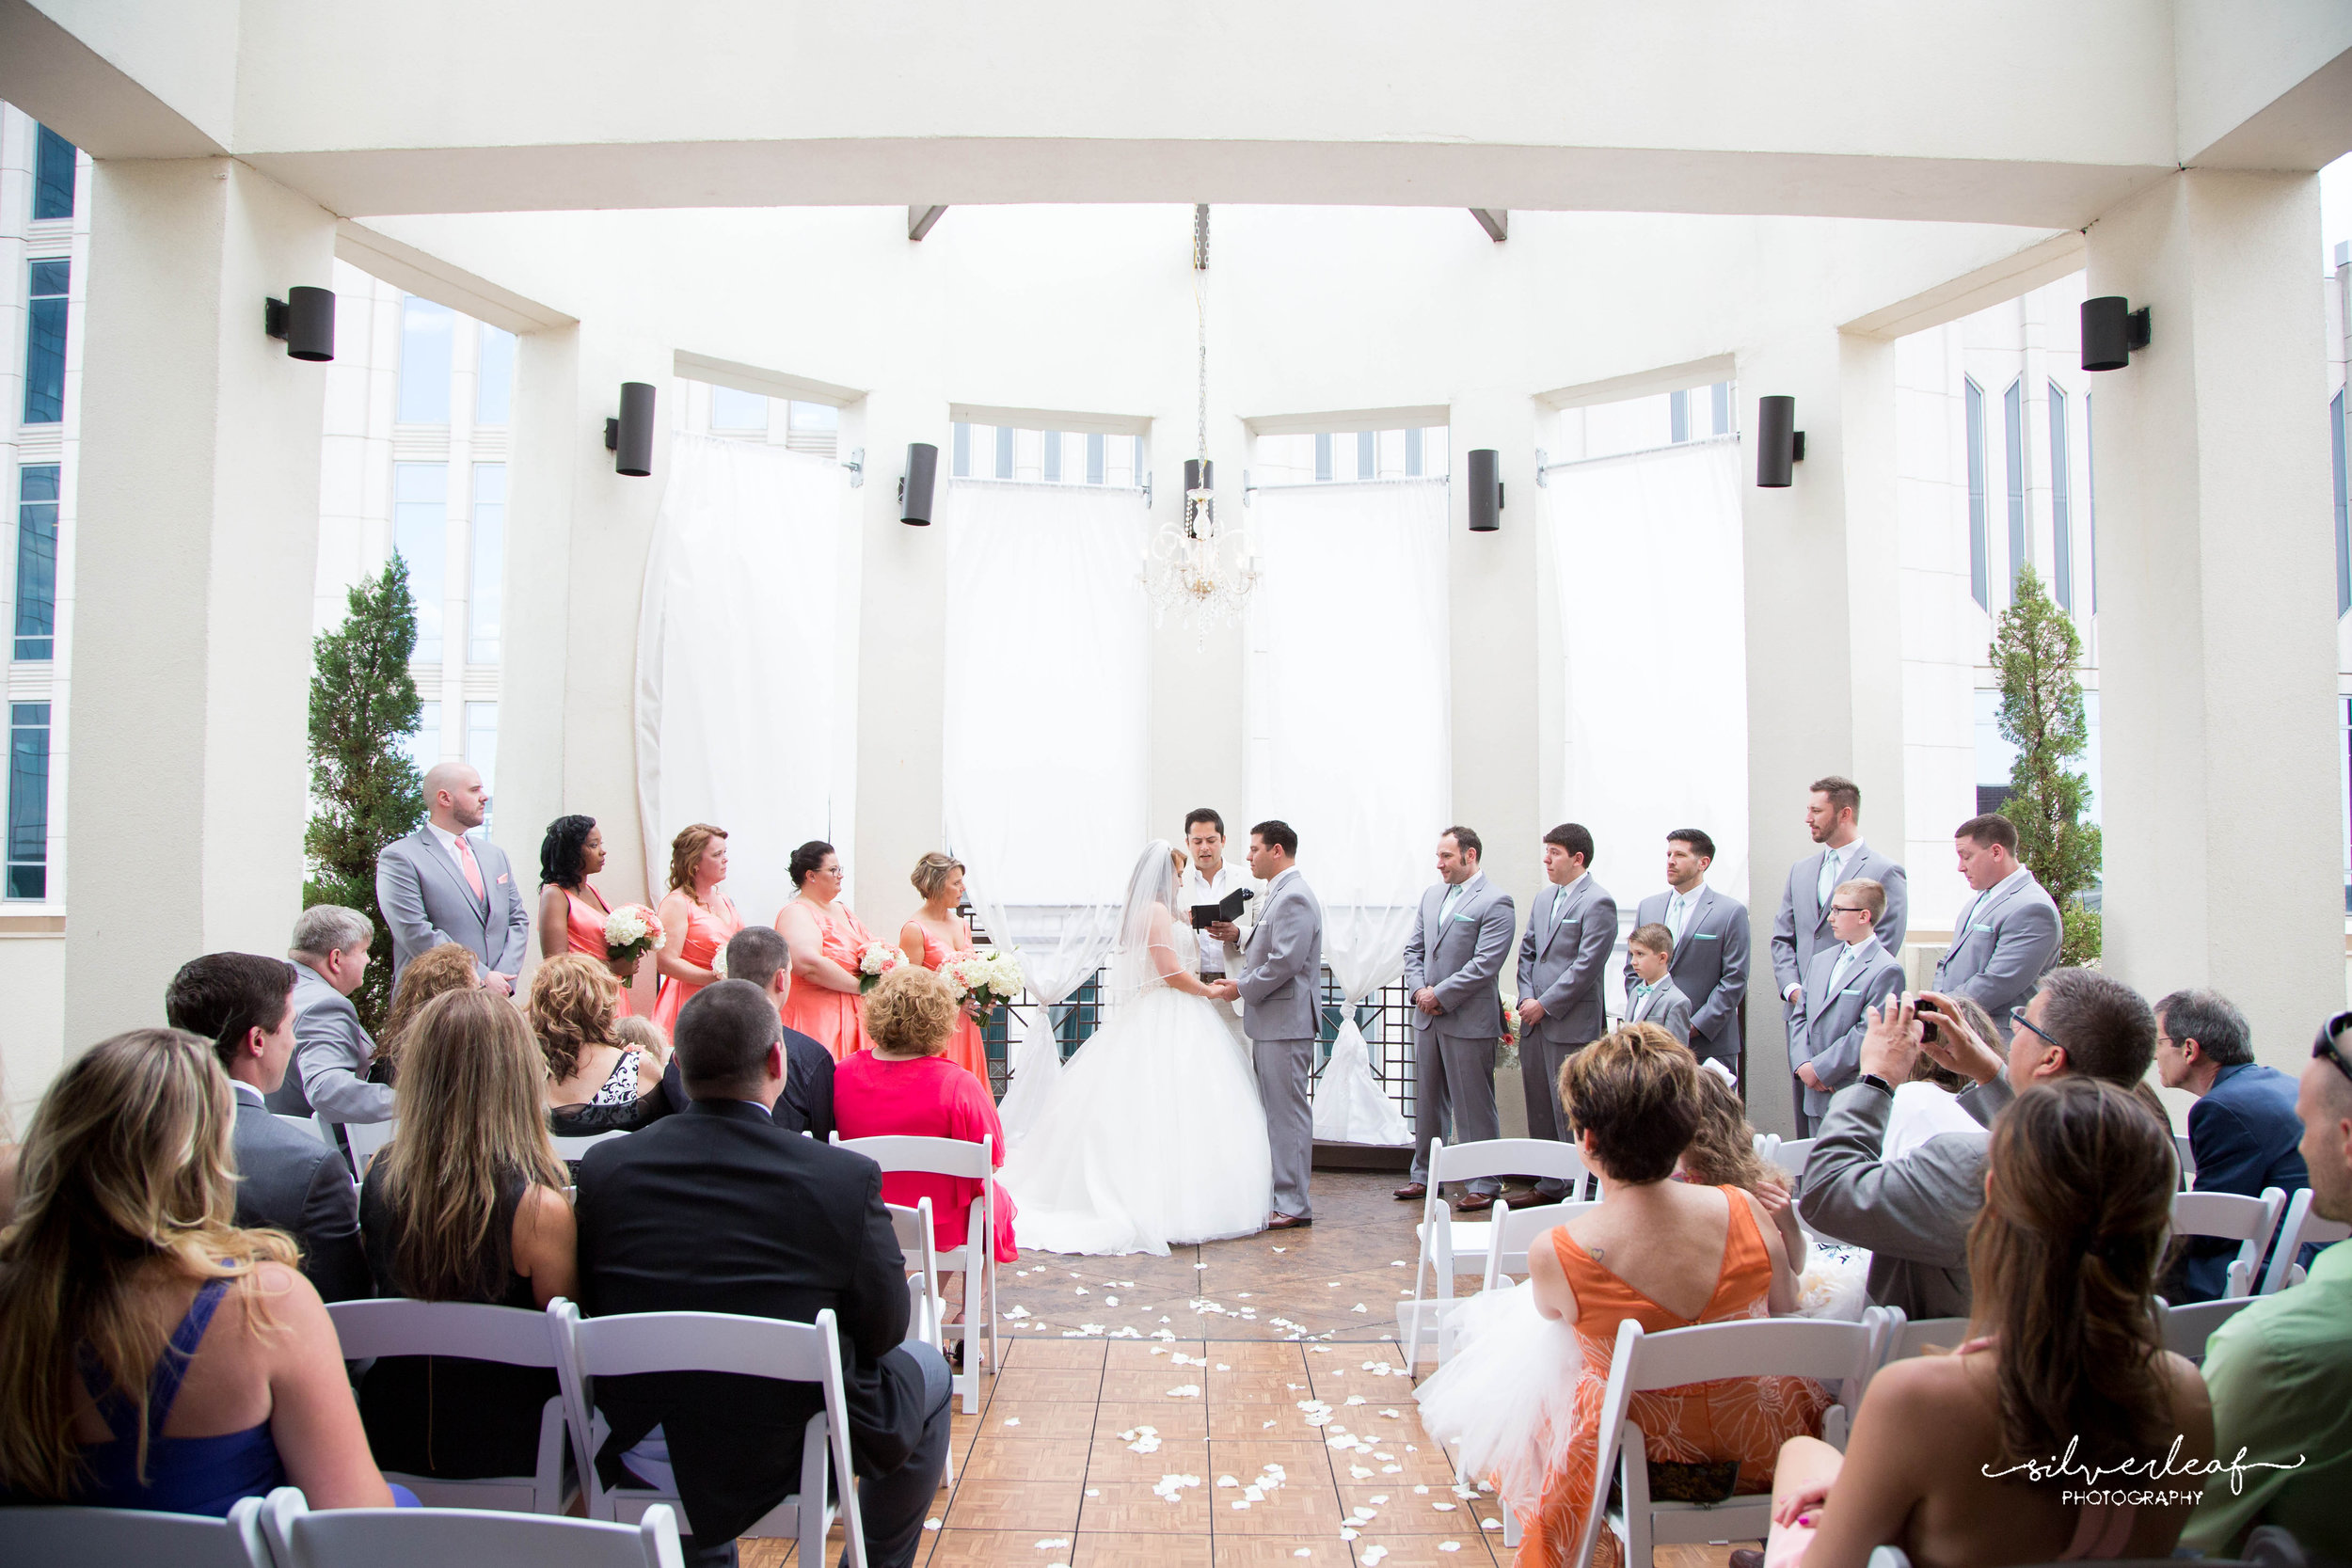 Exchange Your Vows - Outdoors on our breathtaking rooftop rotunda.